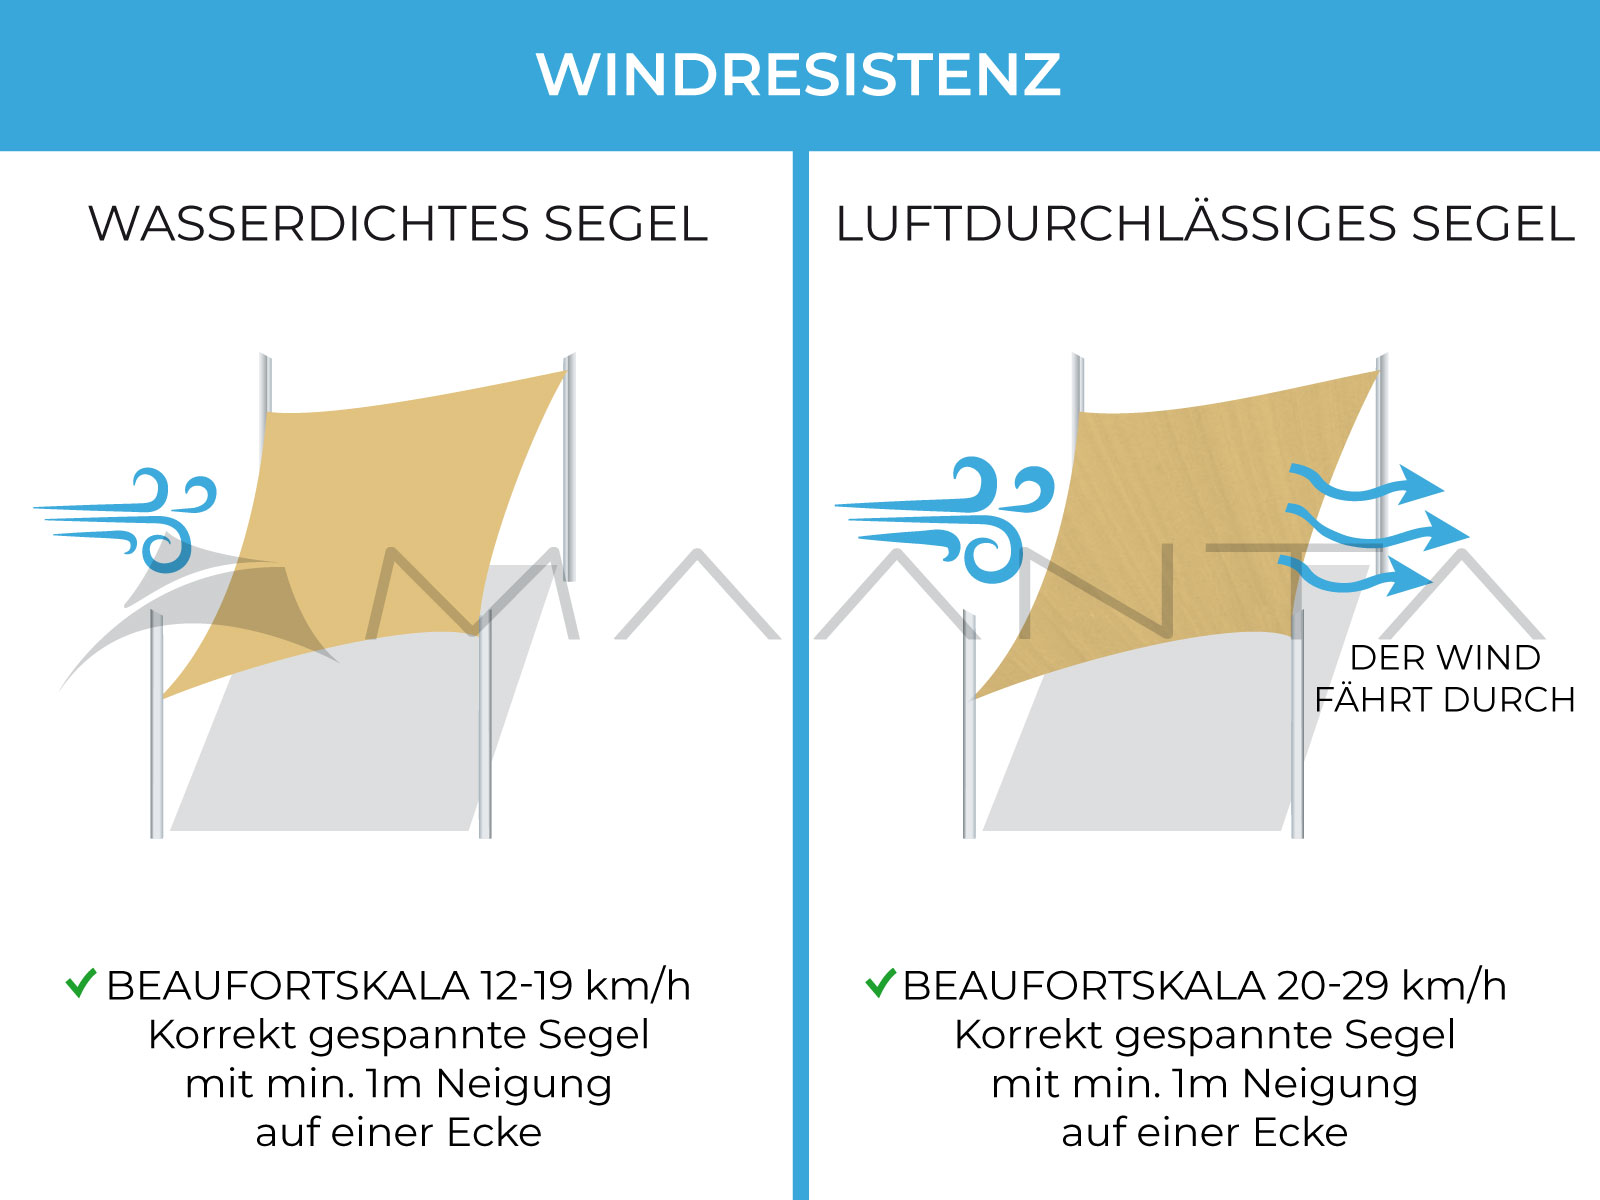 windresistenz sonnensegel